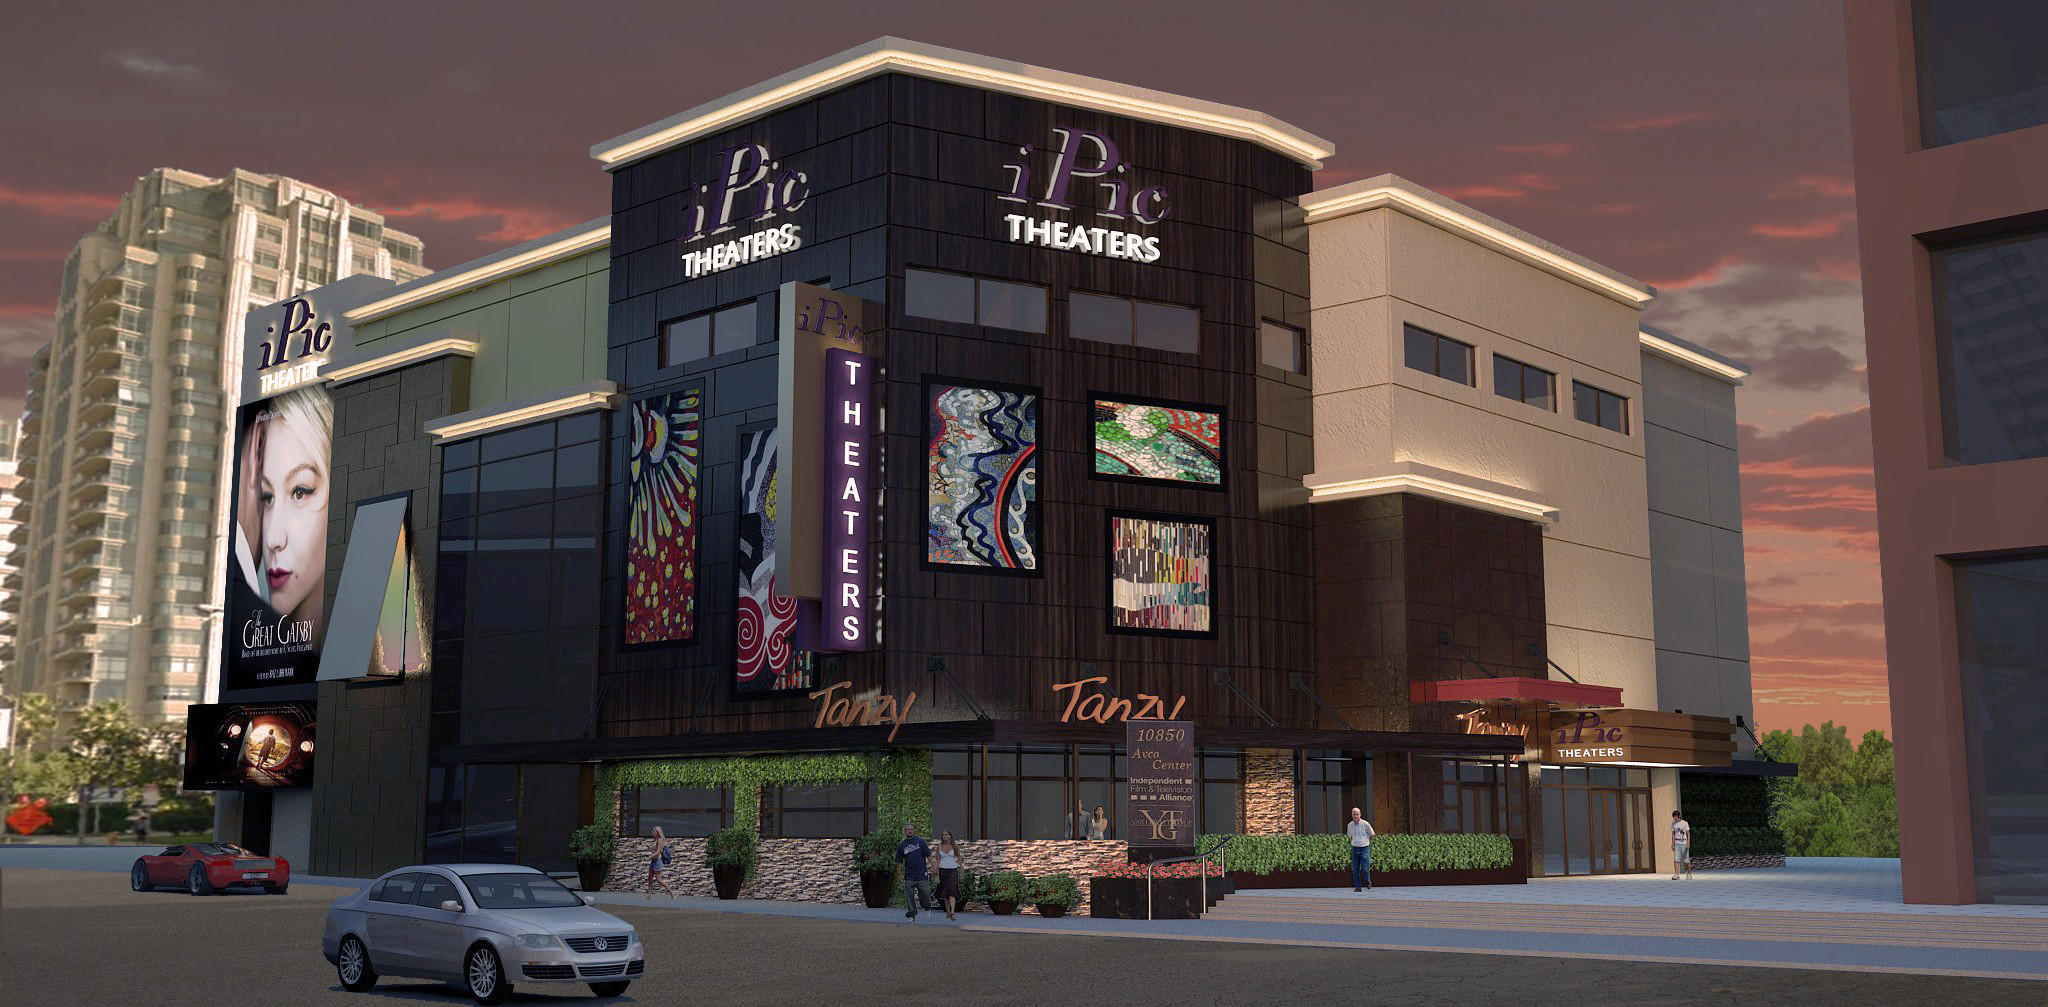 ipic theaters is opening a luxury cinema in westwood